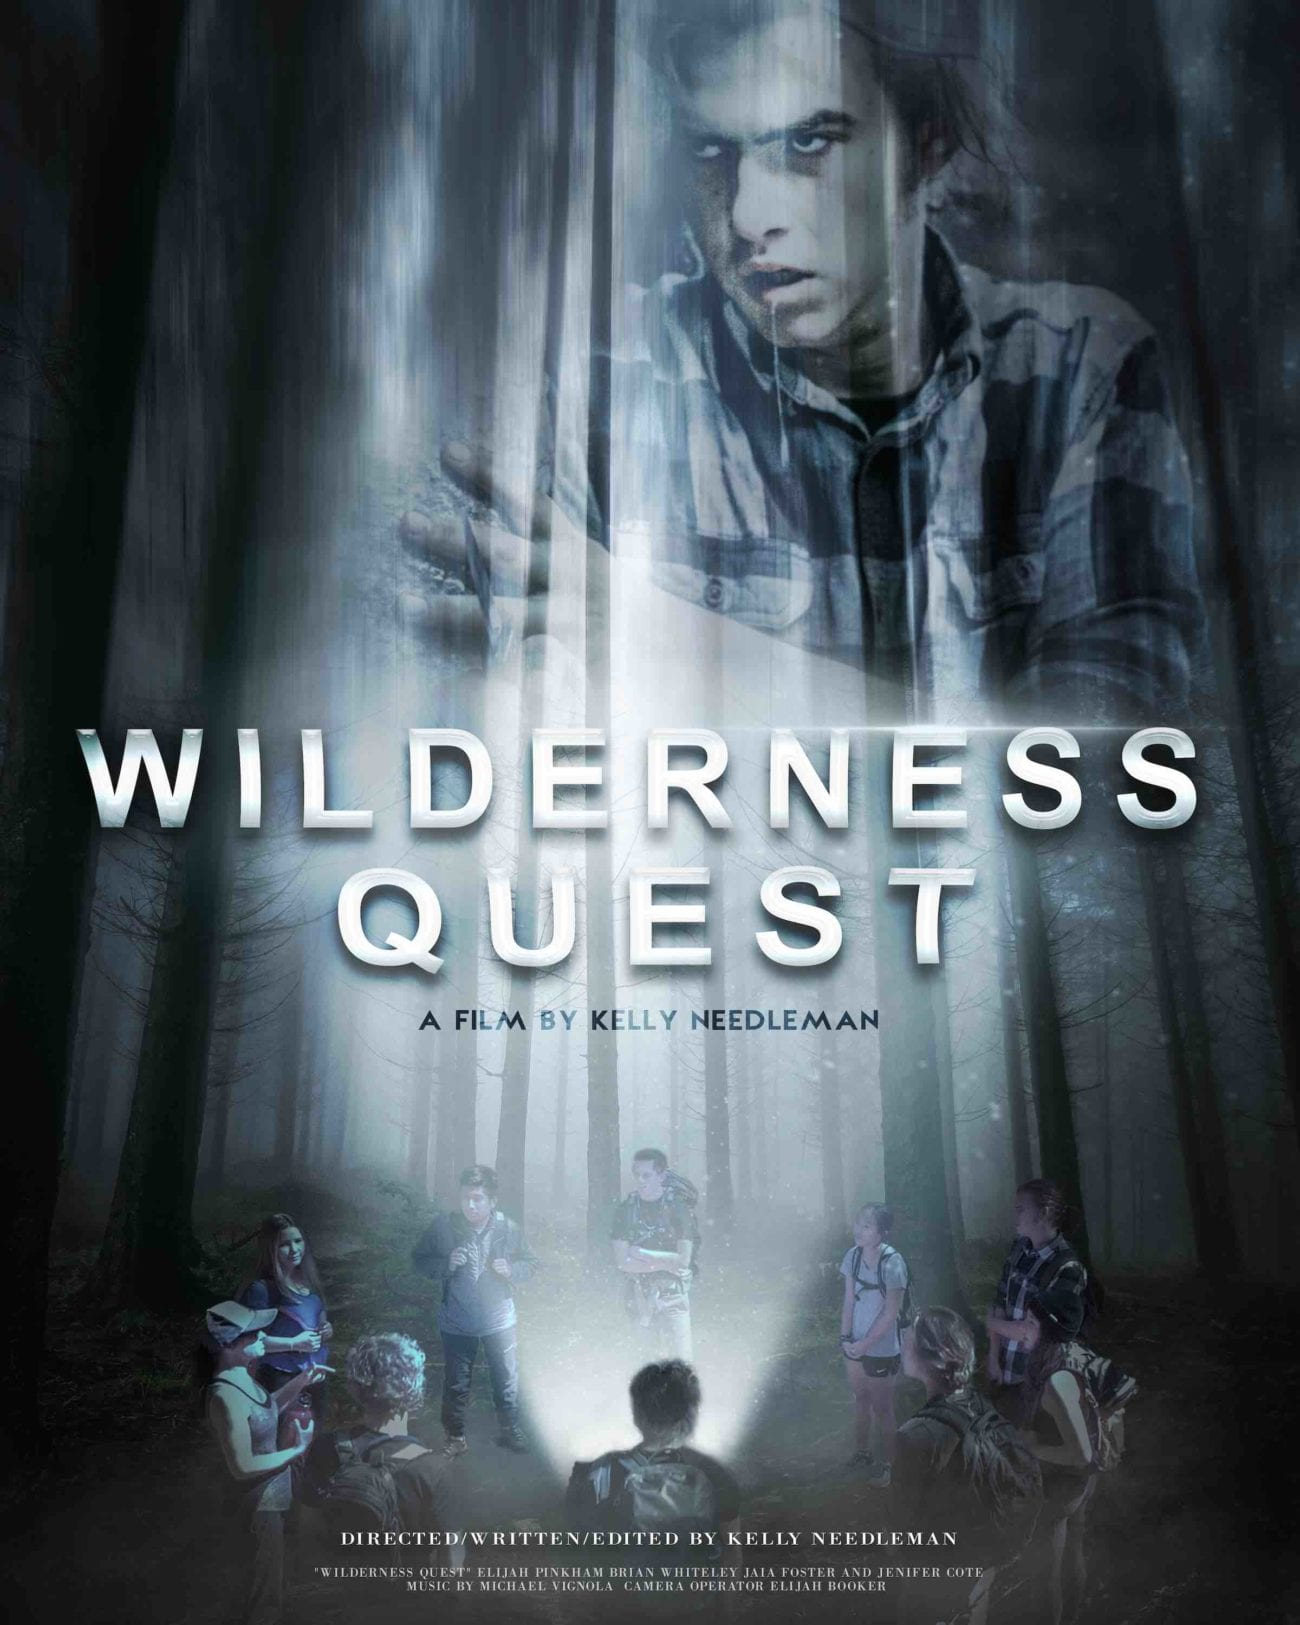 Filmmaker Kelly Needleman is making his mark with his filmmaking skills and representing the youth in Hollywood with new short 'Wilderness Quest'.